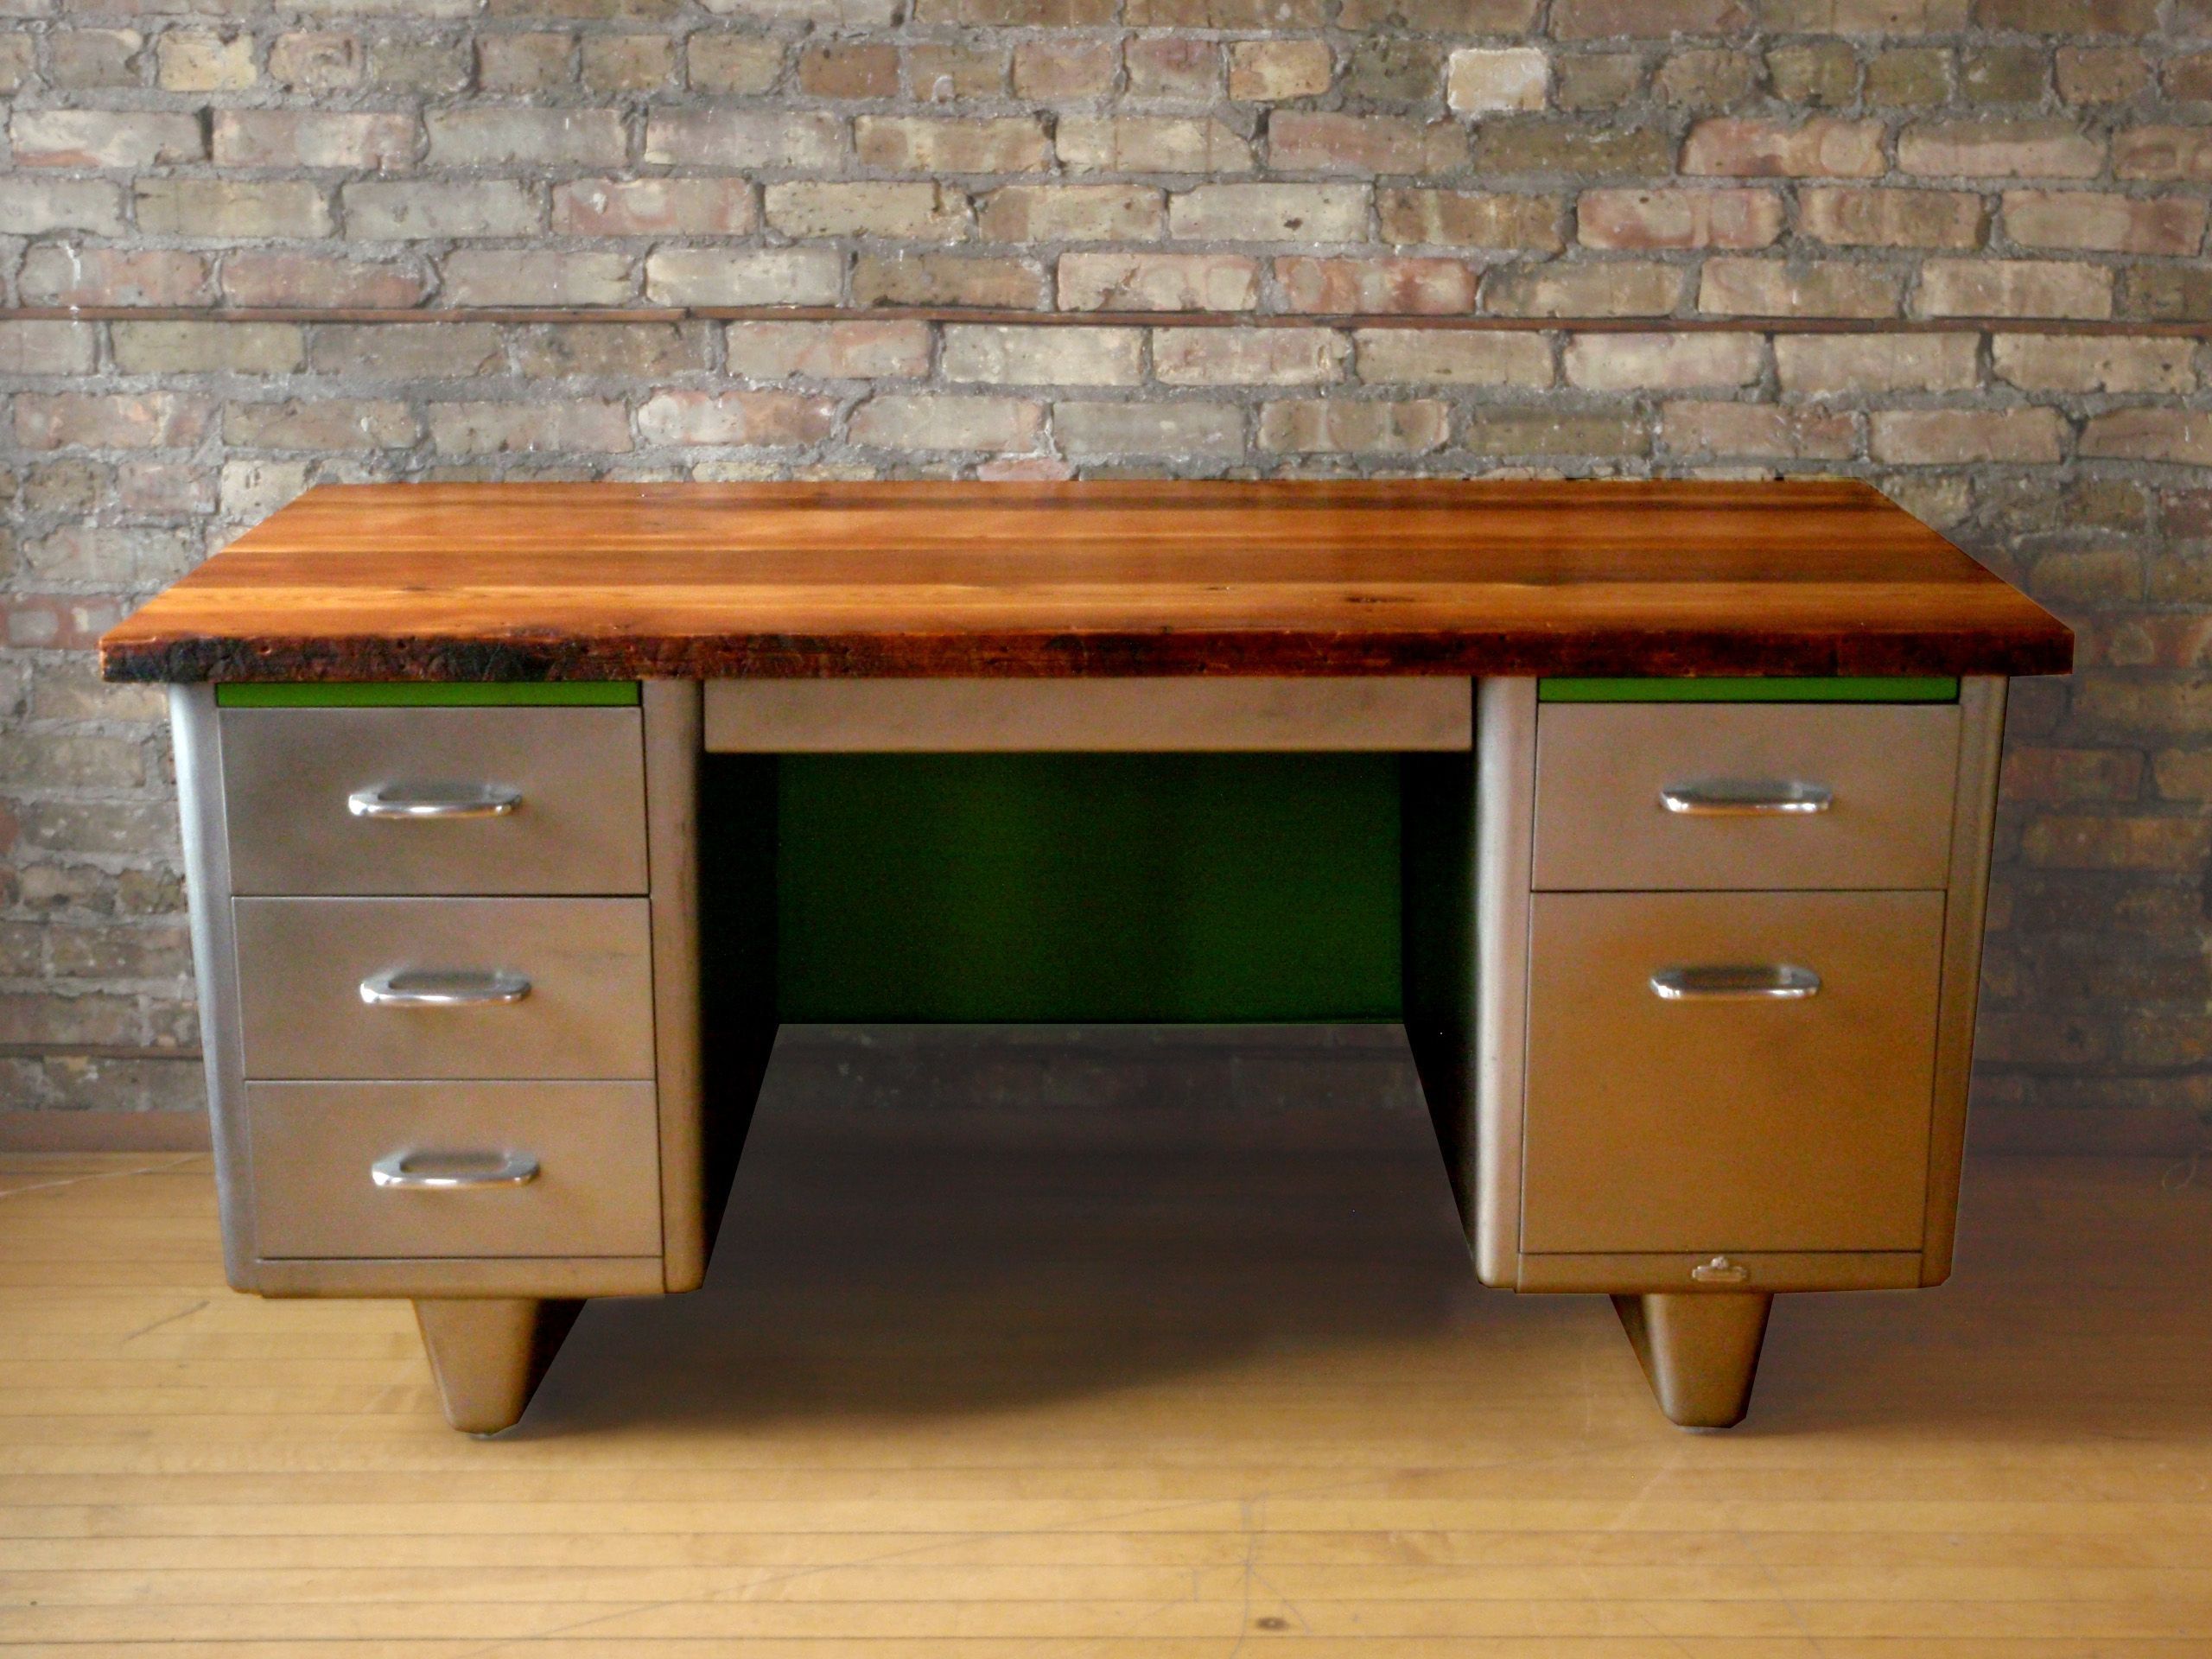 Reclaimed Wood Steel Desk